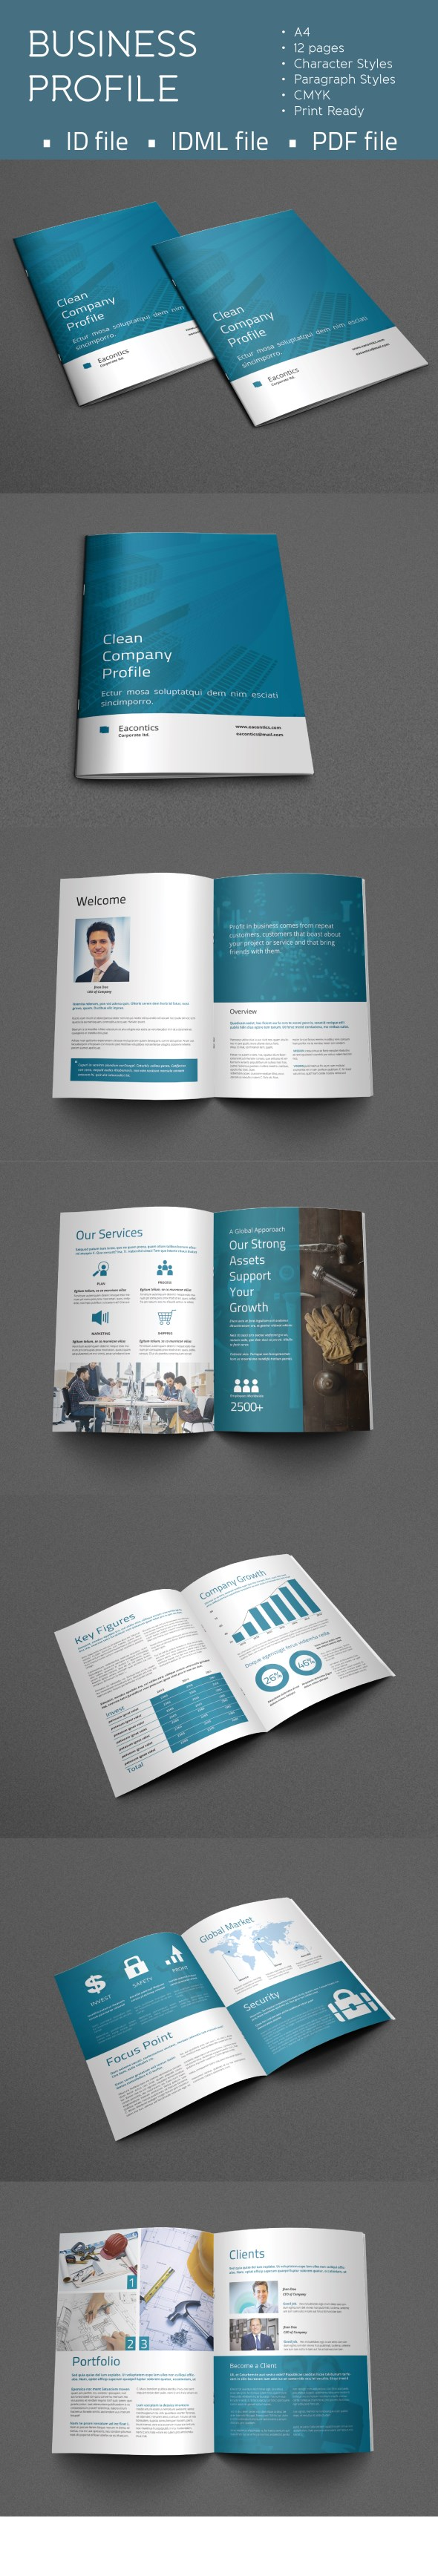 Professional  Corporate Indesign Business Template That Can Be